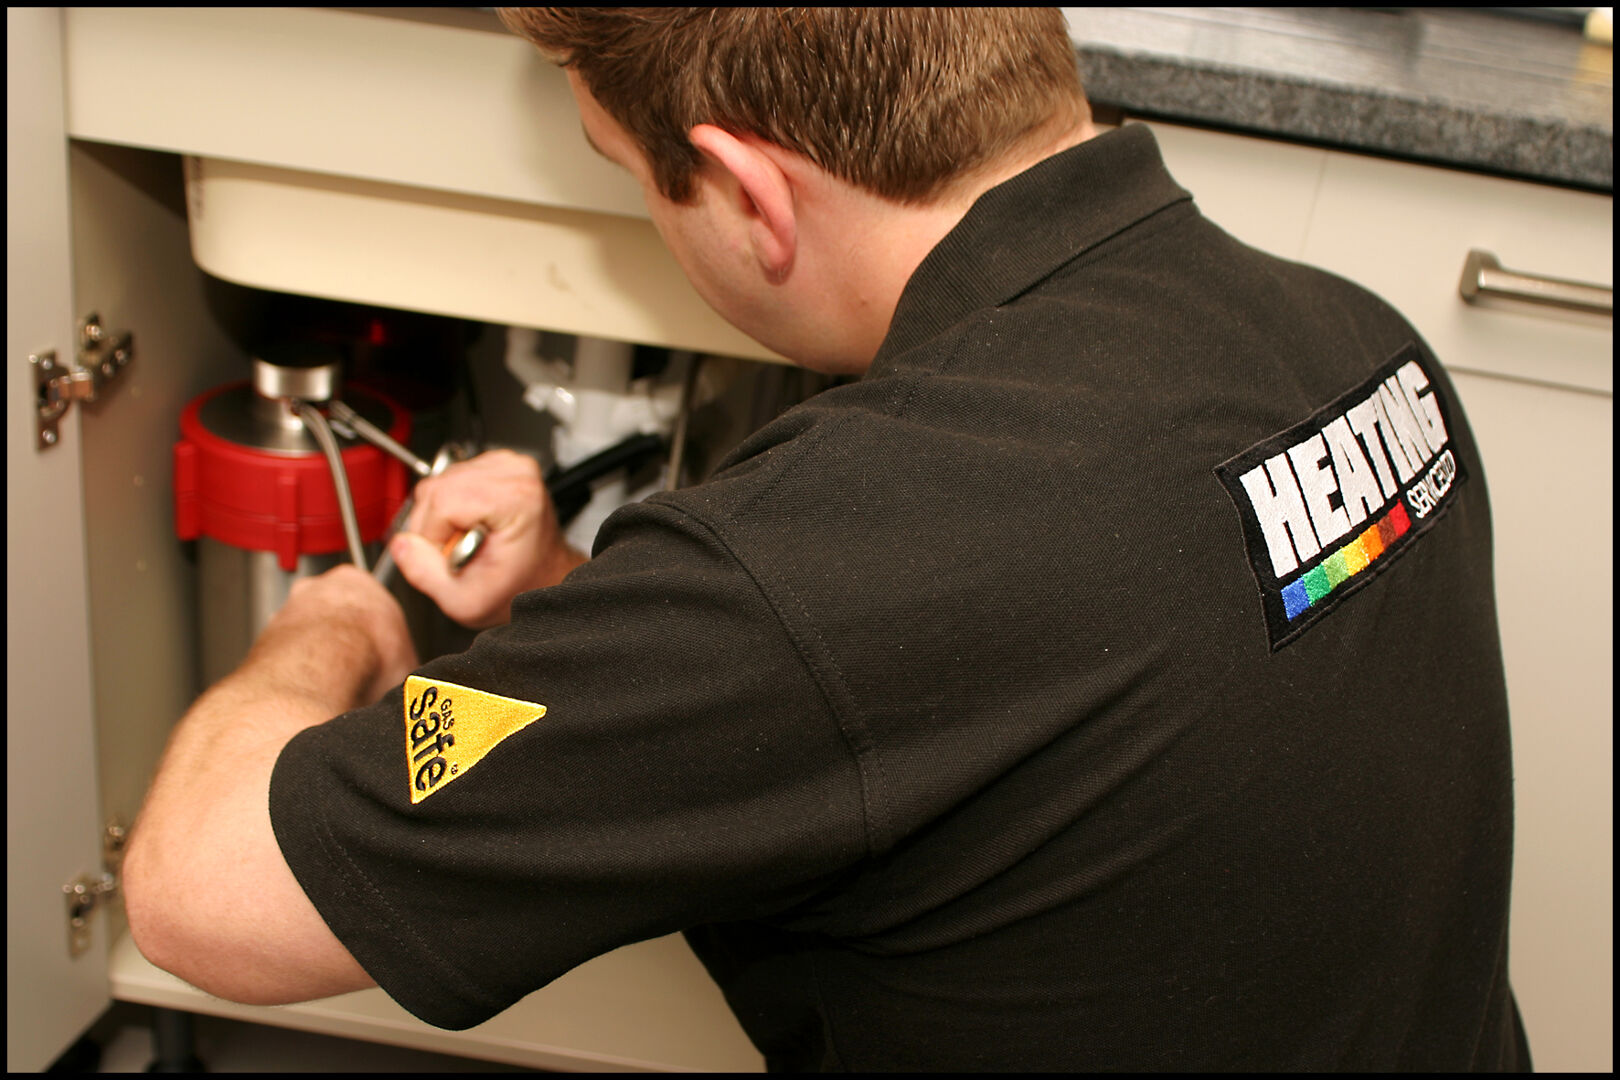 Plumbers Boiler Installation Service and Repairs and Bathroom Design and Installation by Heating Services Ltd in Bromley (2)